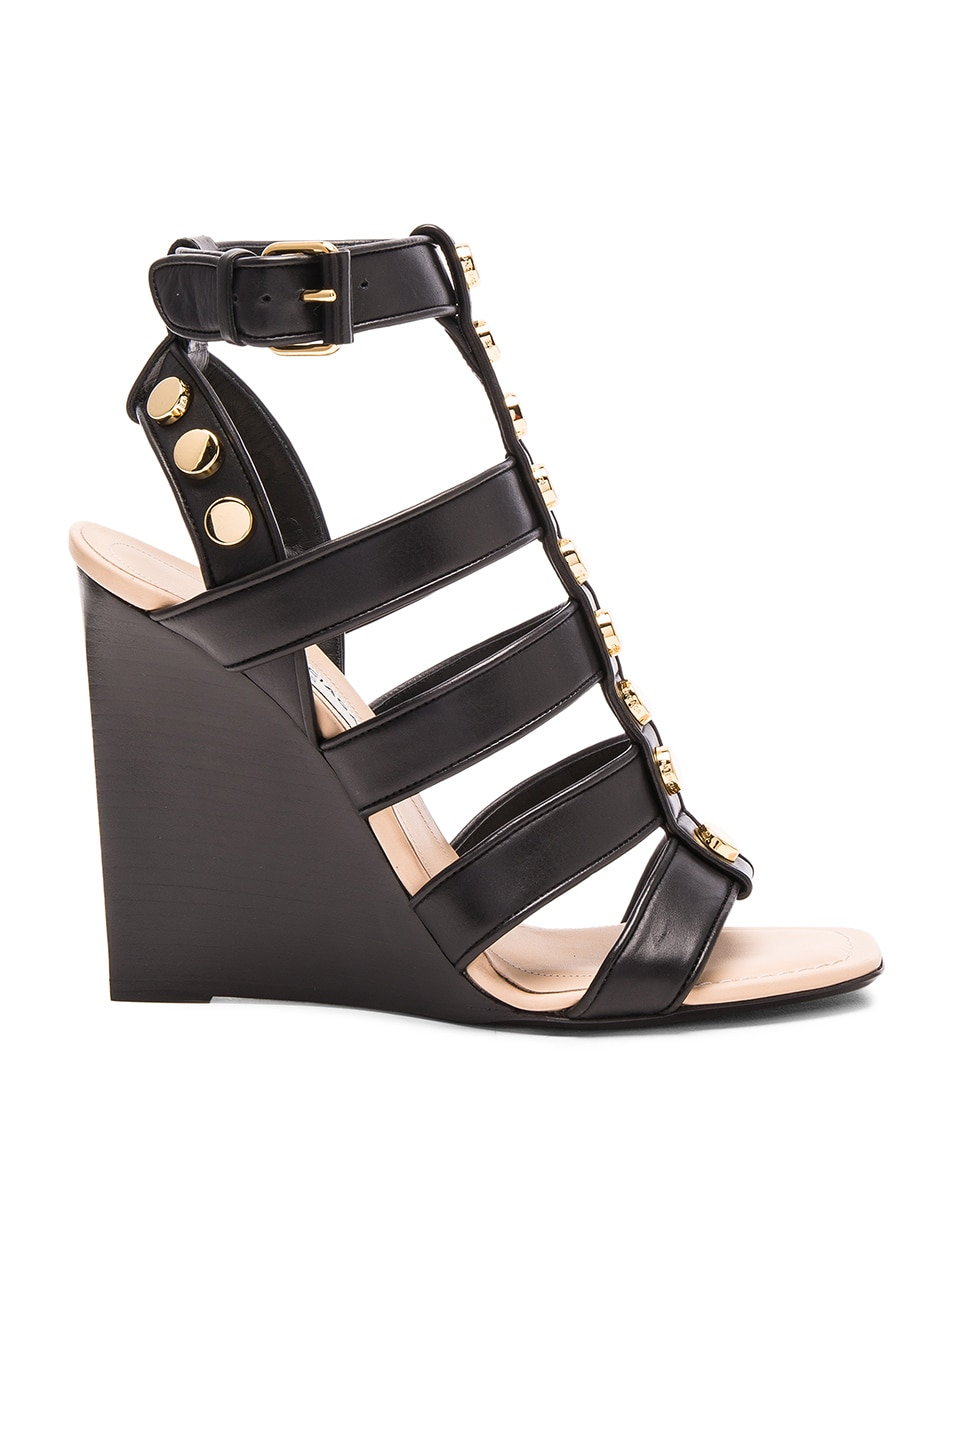 Image 1 of Balenciaga Studded Leather Wedge Sandals in Black